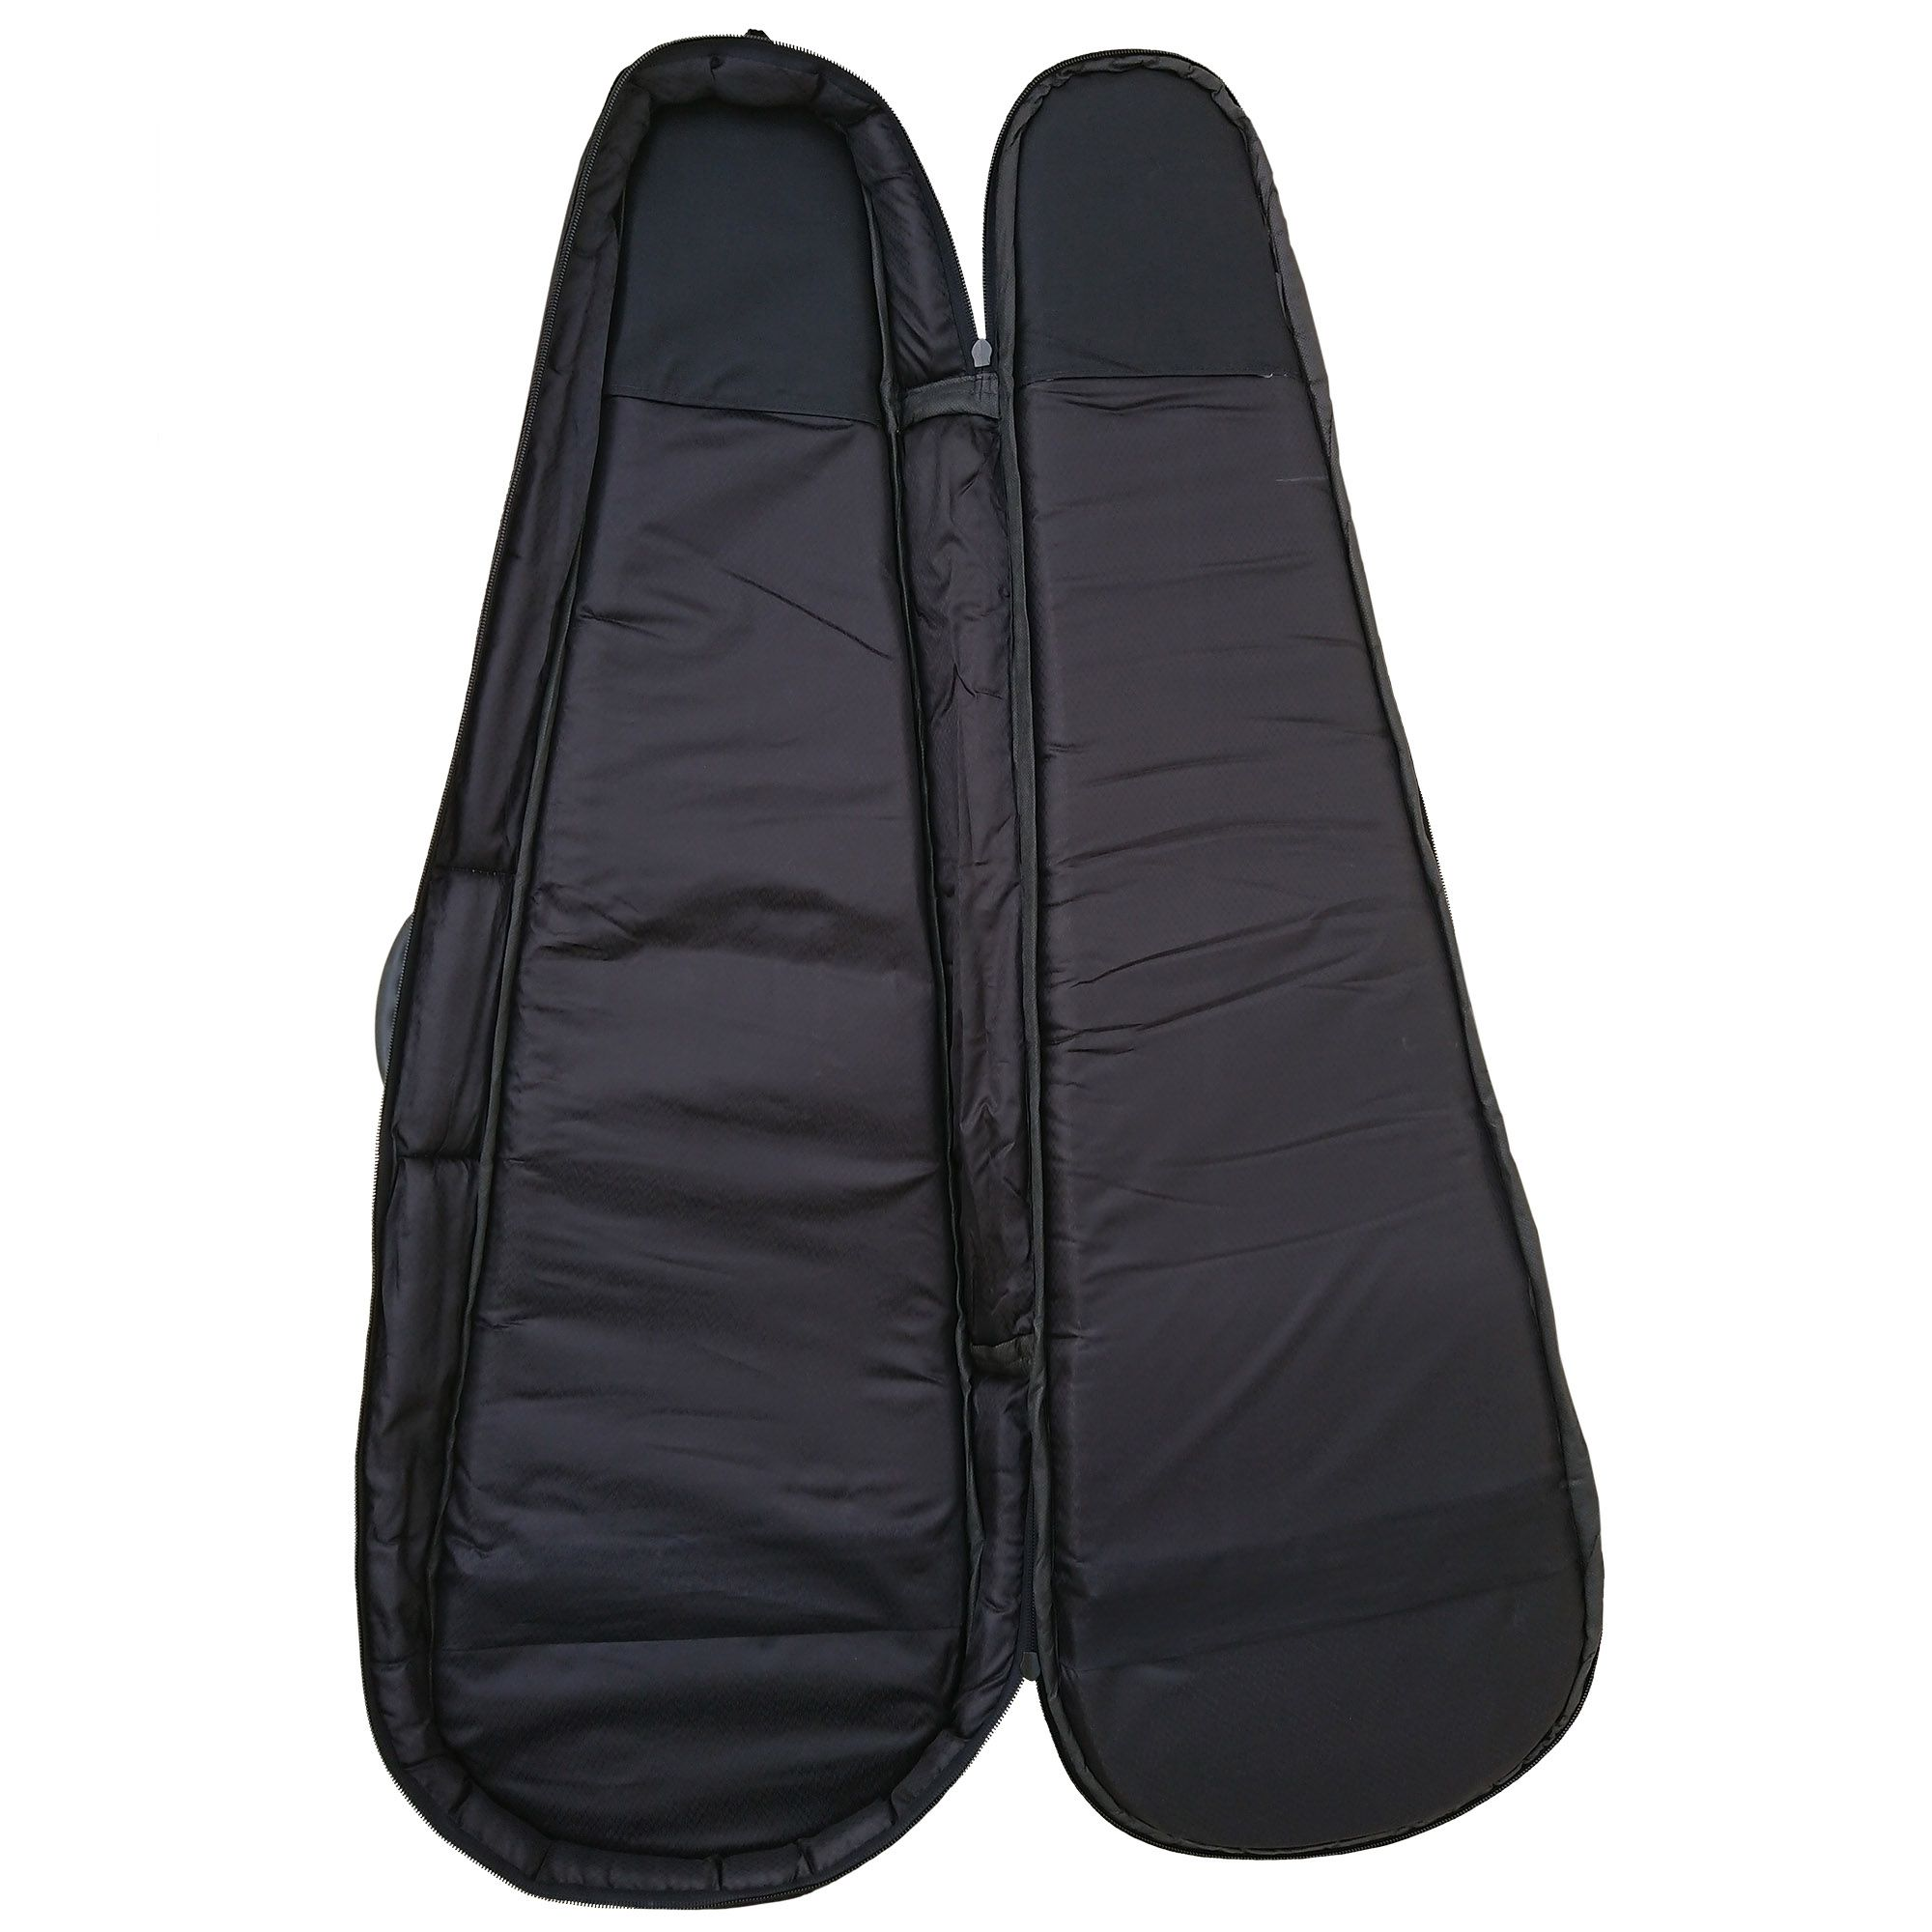 Capa Bag para Guitarra Semi Case Premium CLAVE & BAG SC 507. FULL